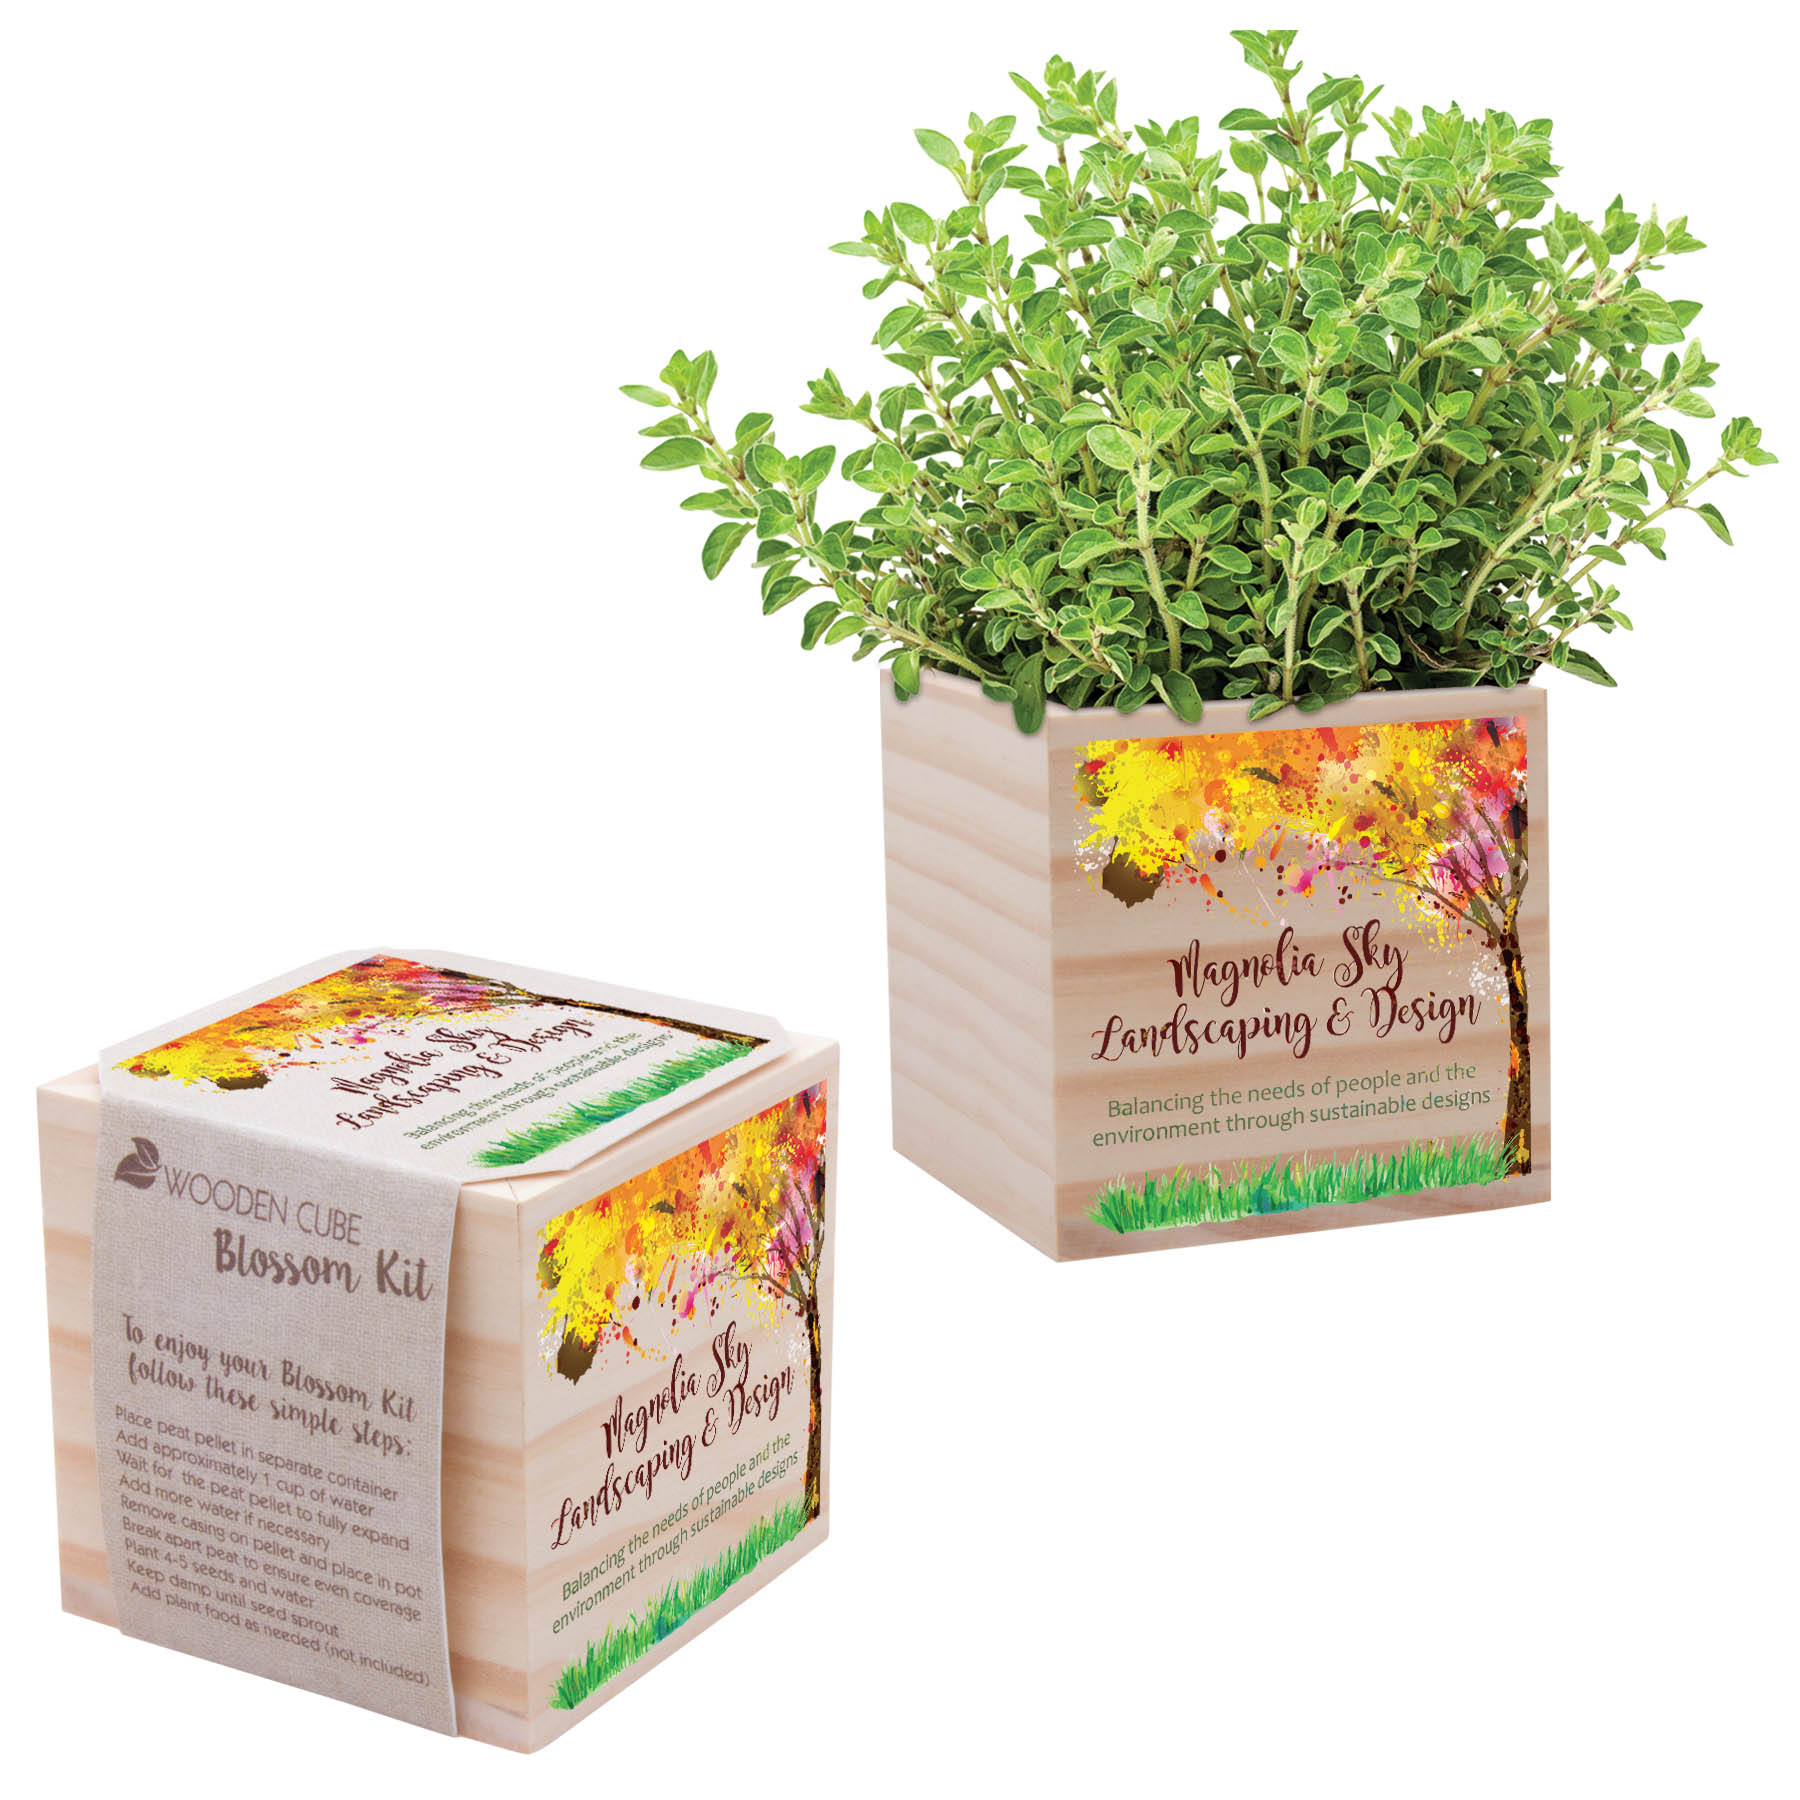 Go green with custom plant kits captiv8 promotions for Indoor gardening kit green toys